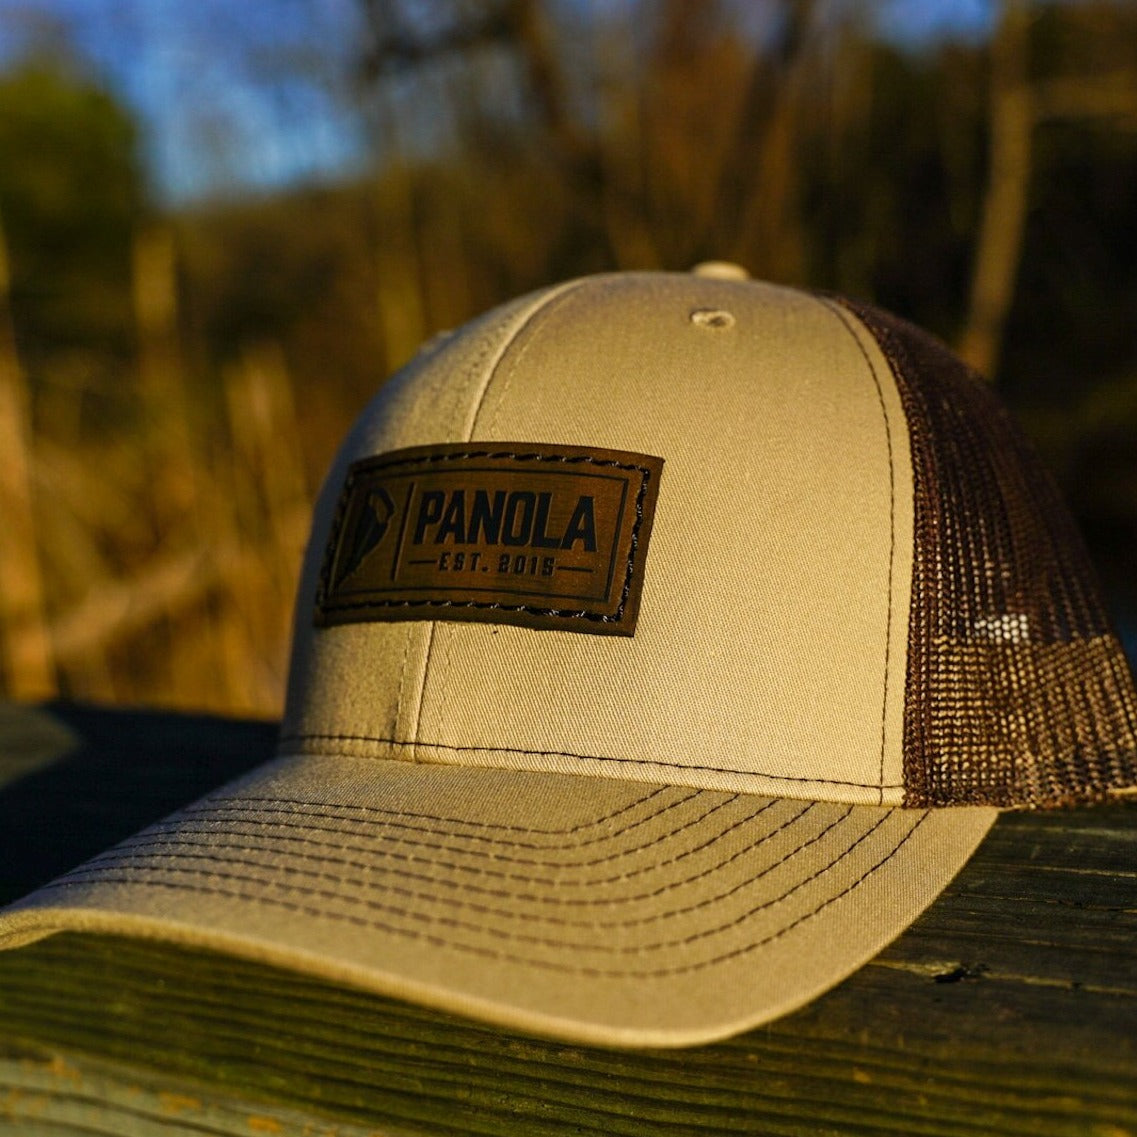 Panola Brand Leather Patch Trucker Hat